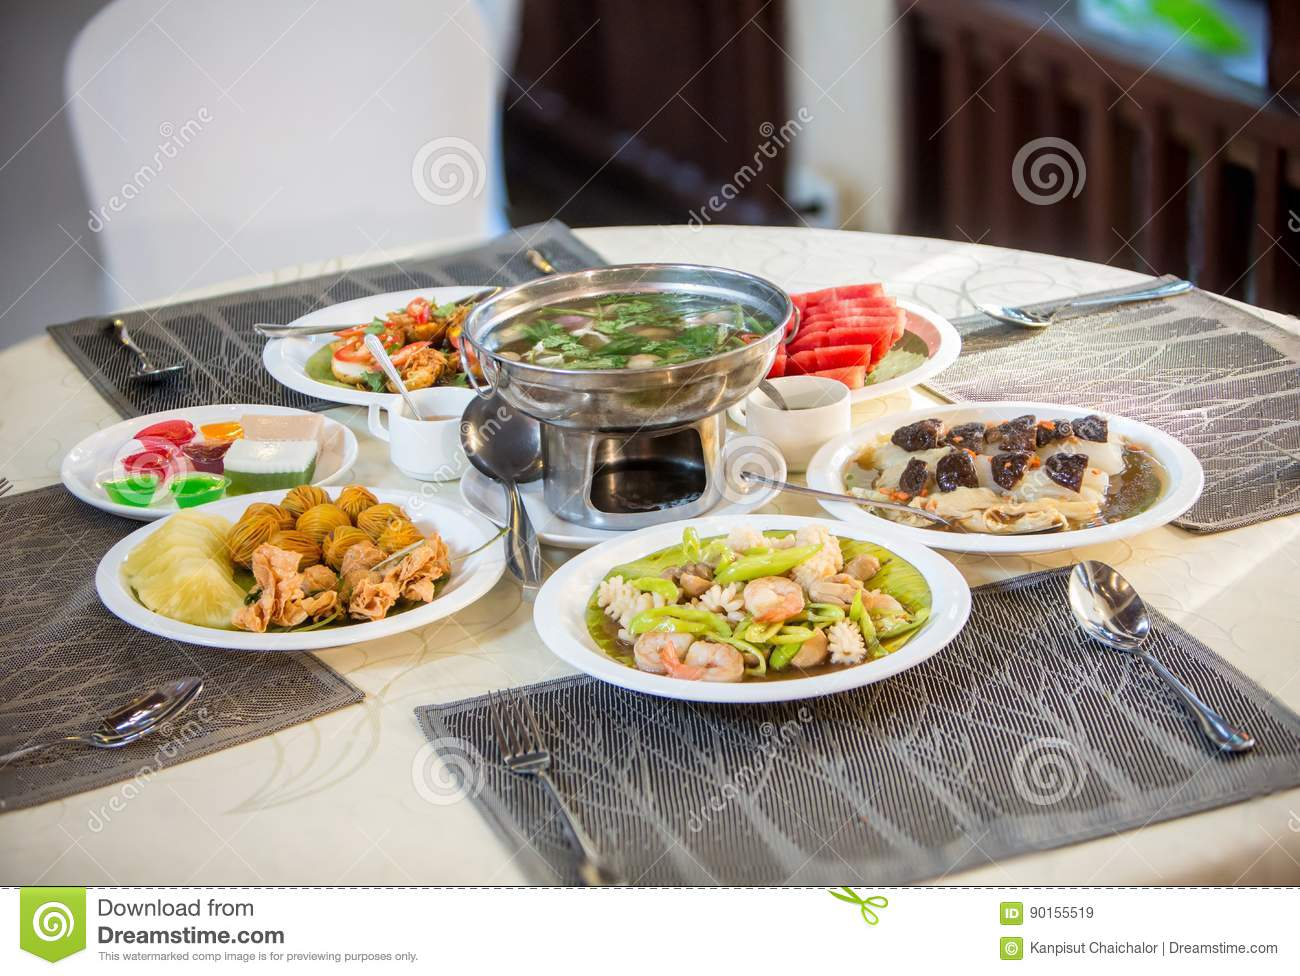 Catering cuisine dinner food wedding set